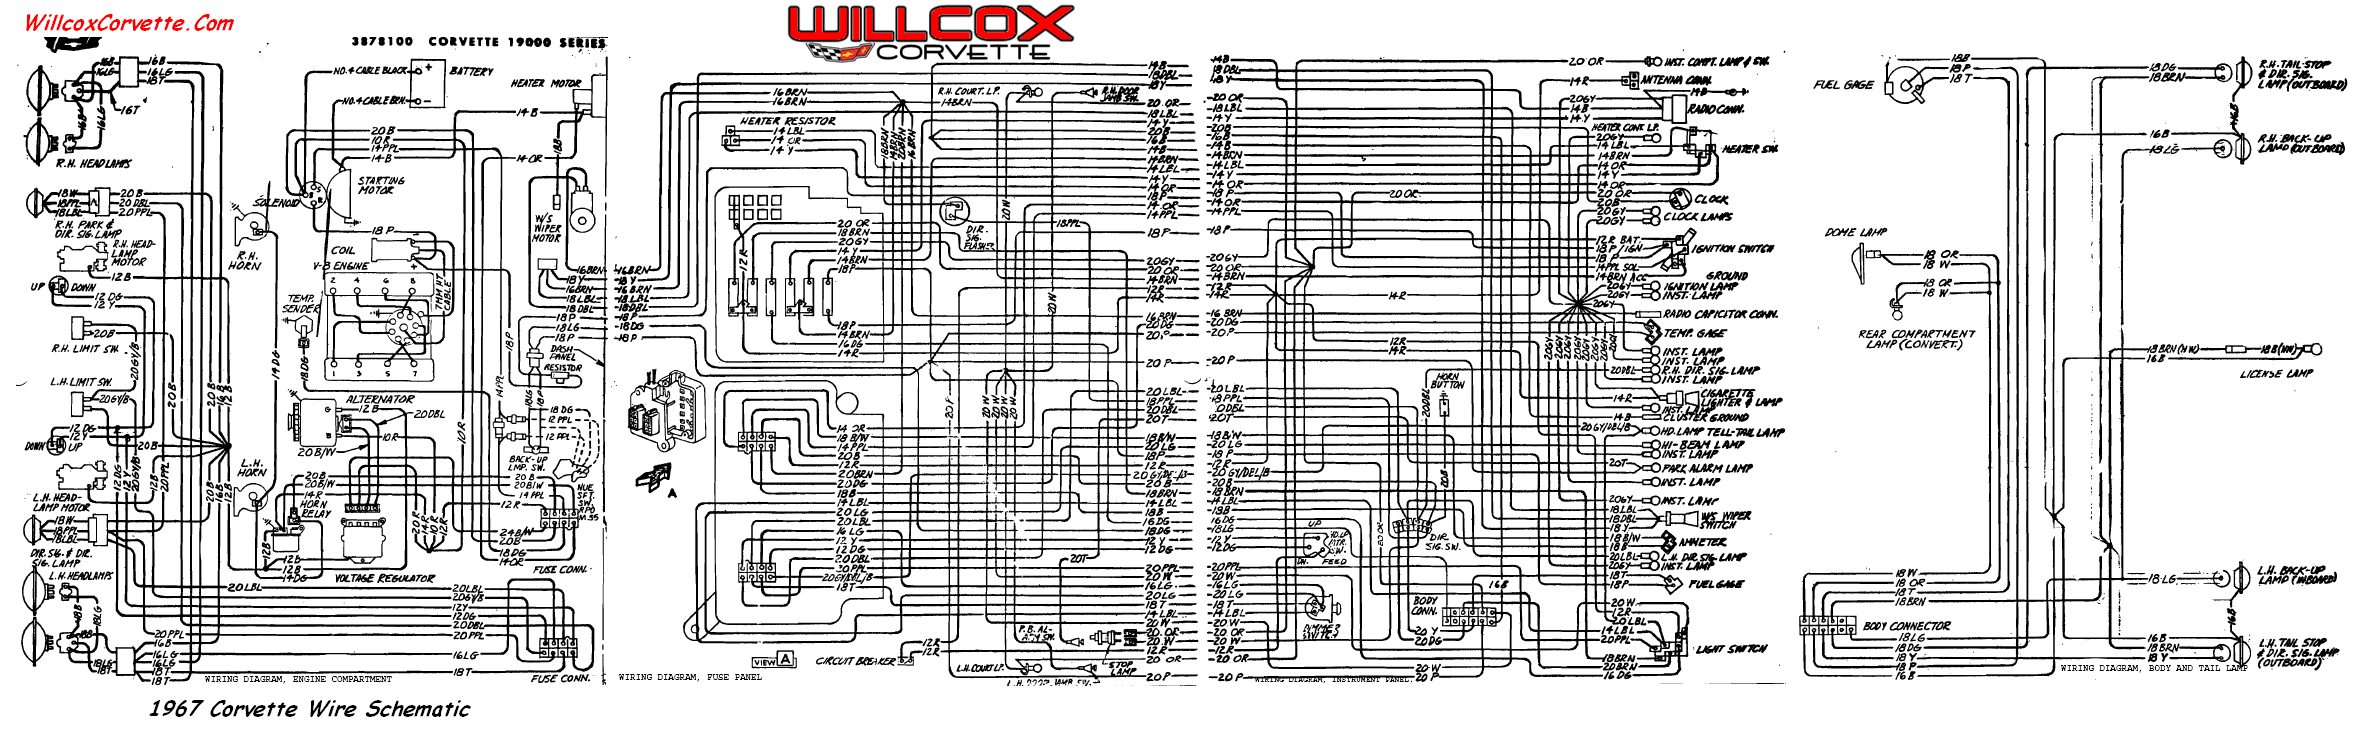 67 wire schematic for tracing wires wiring diagram for 1966 corvette readingrat net 66 Corvette at couponss.co